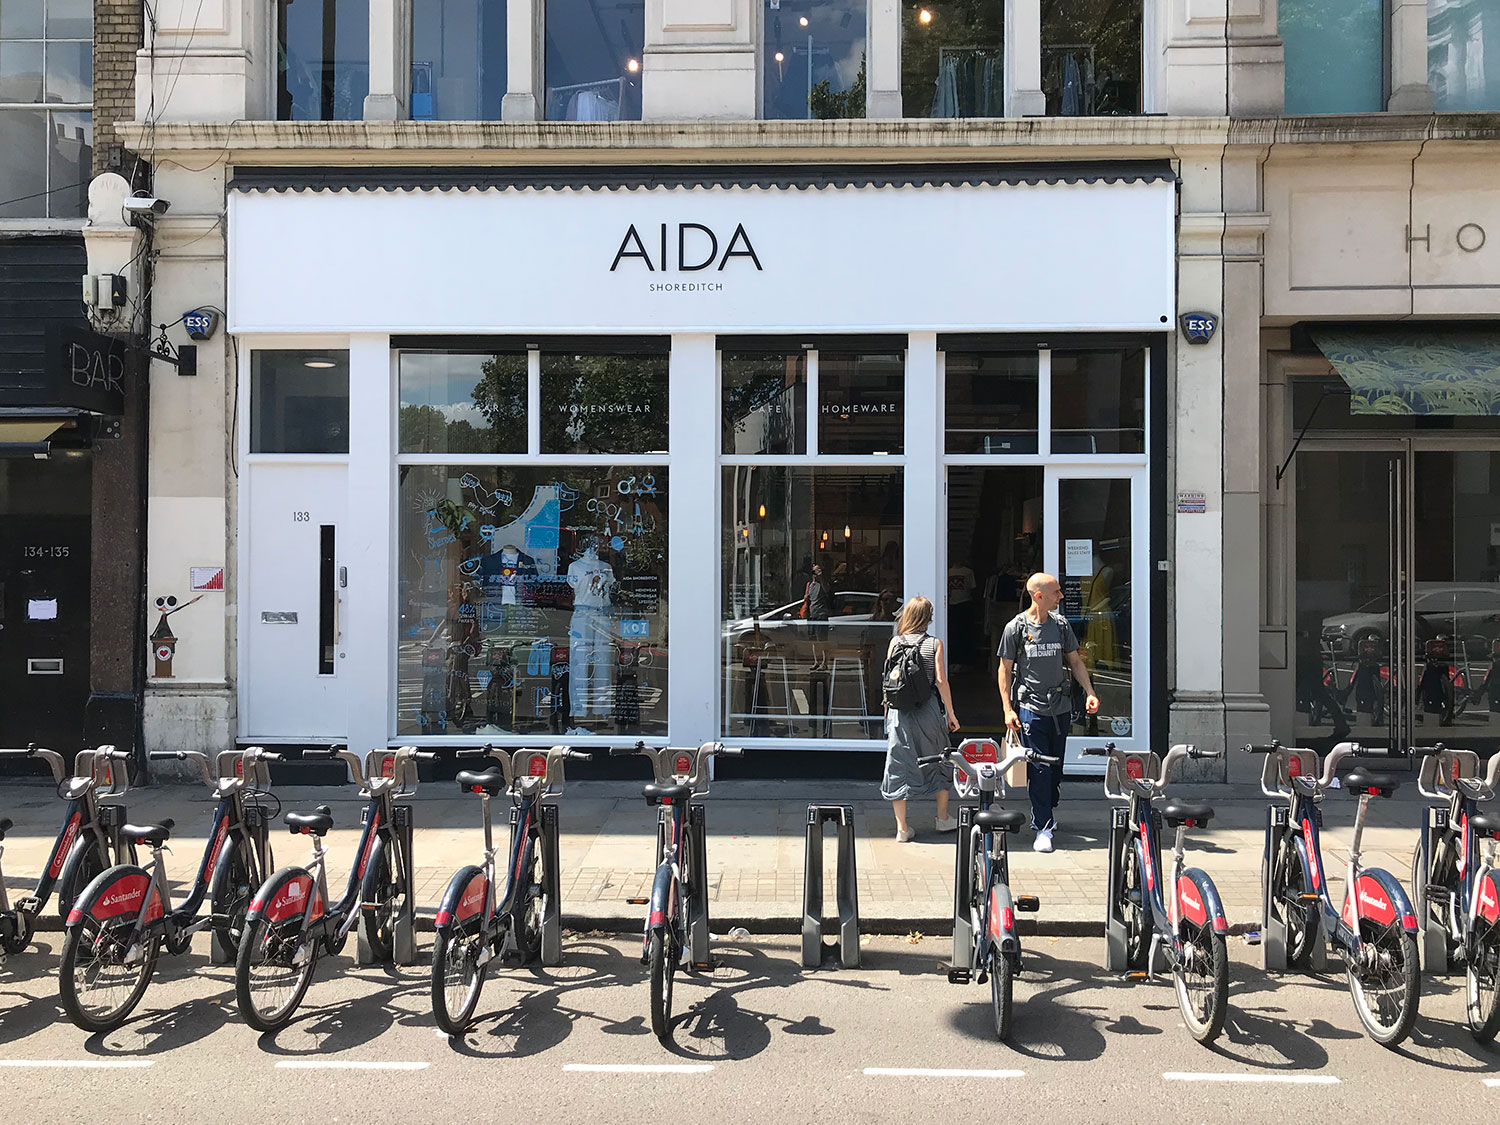 stationery shop walk shoreditch london - aida